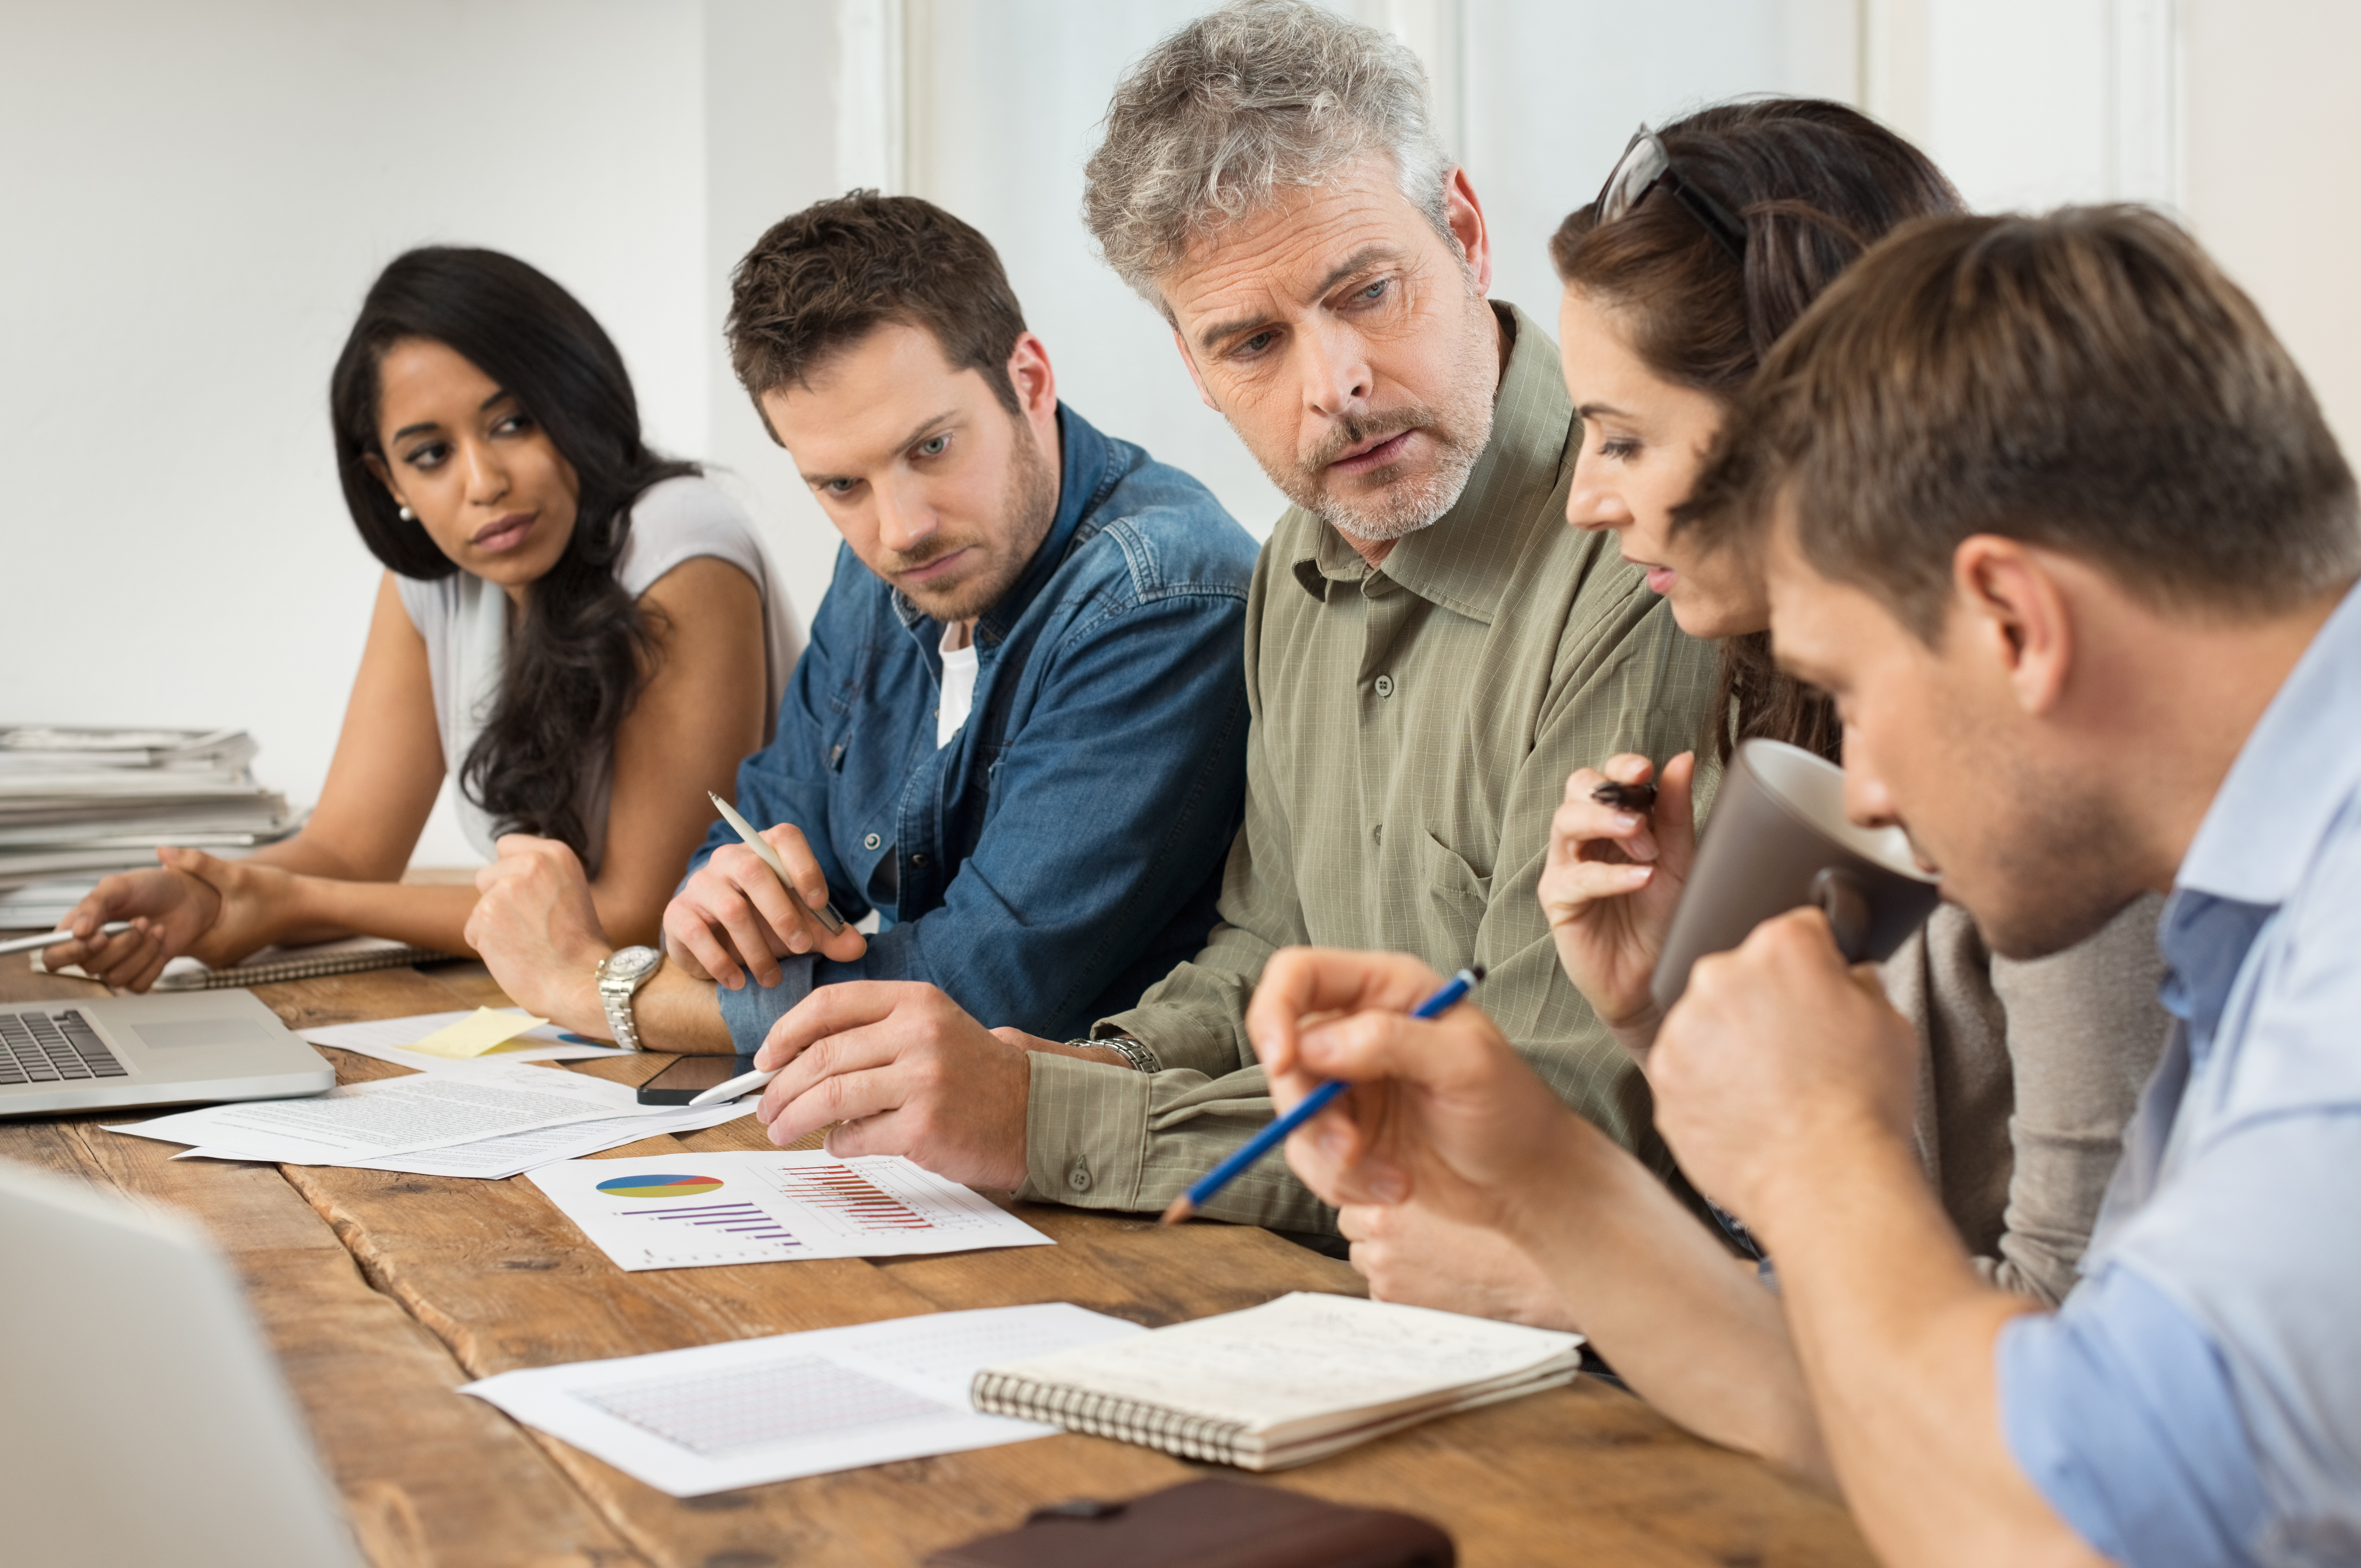 office meeting. Businessman And Woman Discussing On Stockmarket Documents In Office. Team Of Business People Working Together Paperwork. Office Meeting Businesspeople